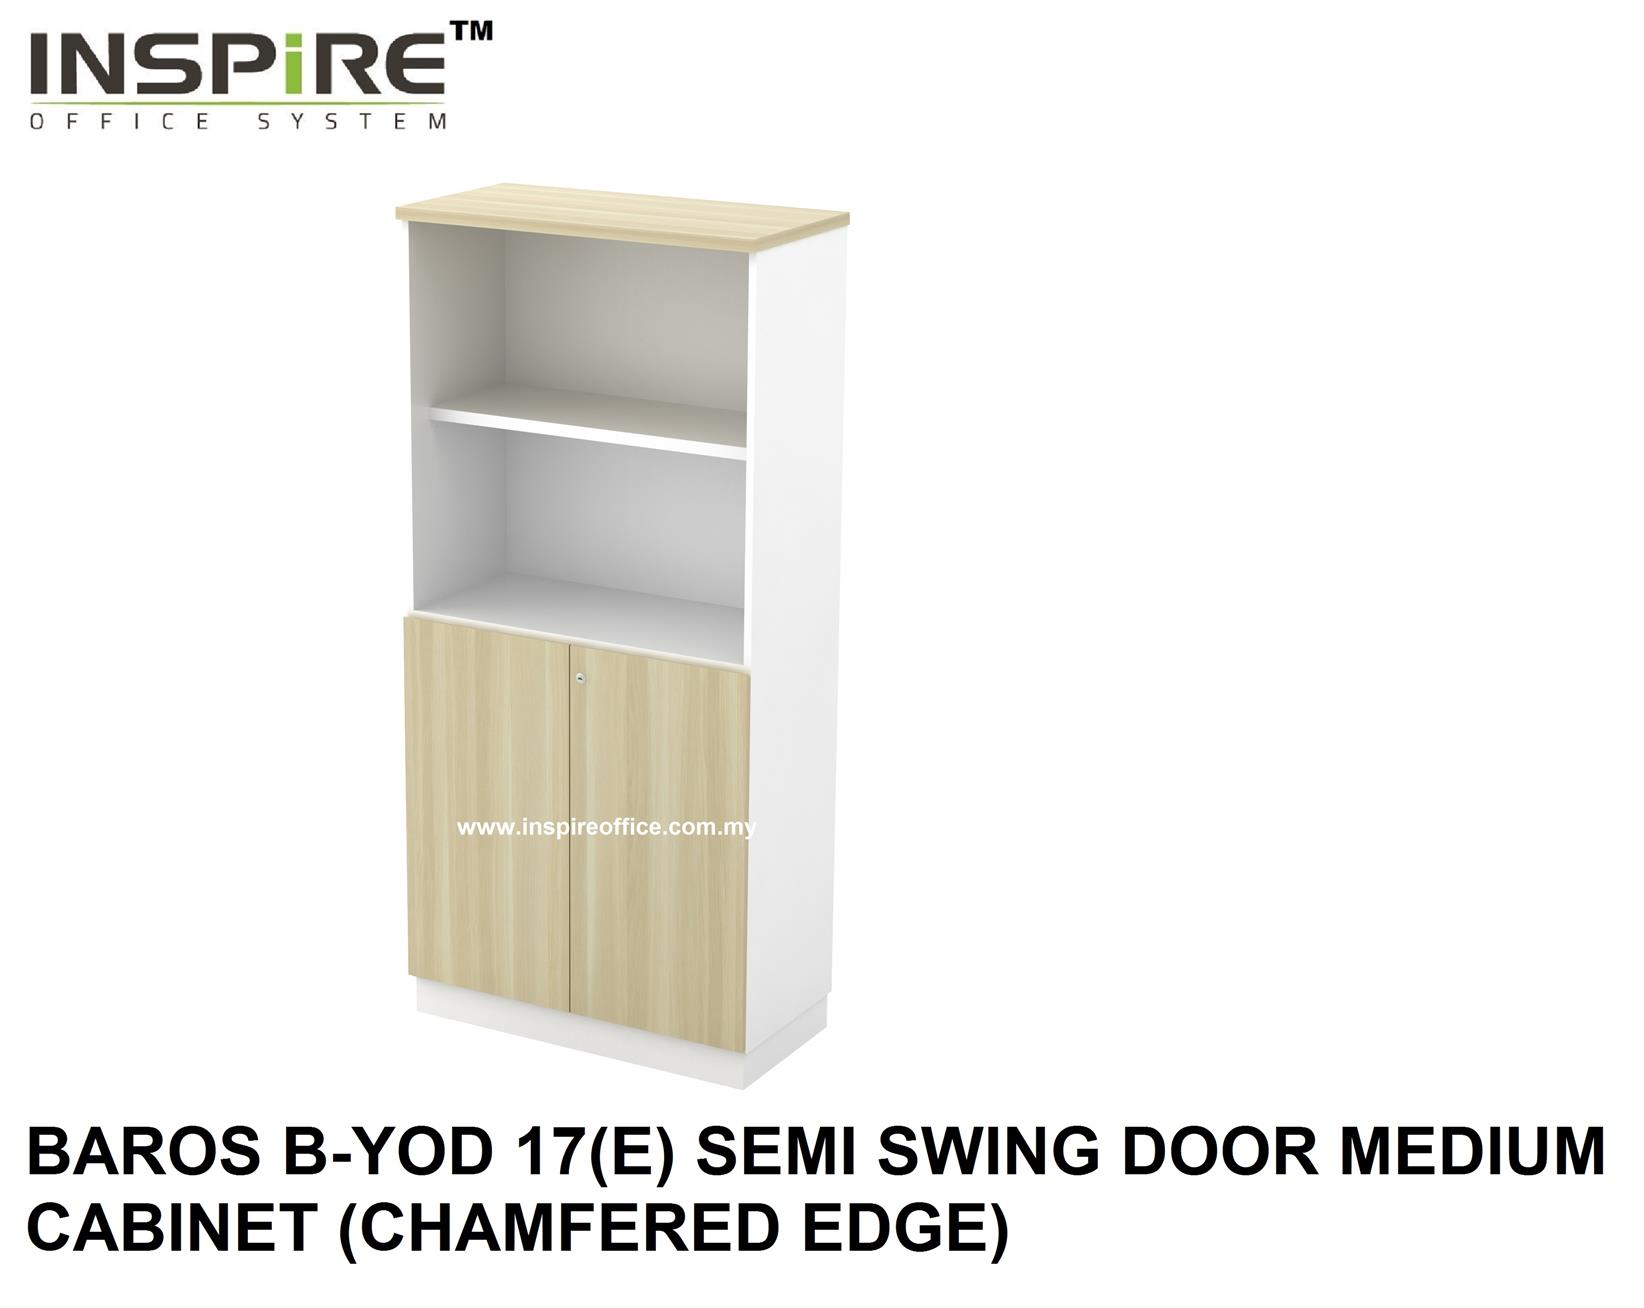 BAROS B-YOD 17(E) SEMI SWING DOOR MEDIUM CABINET (CHAMFERED EDGE)